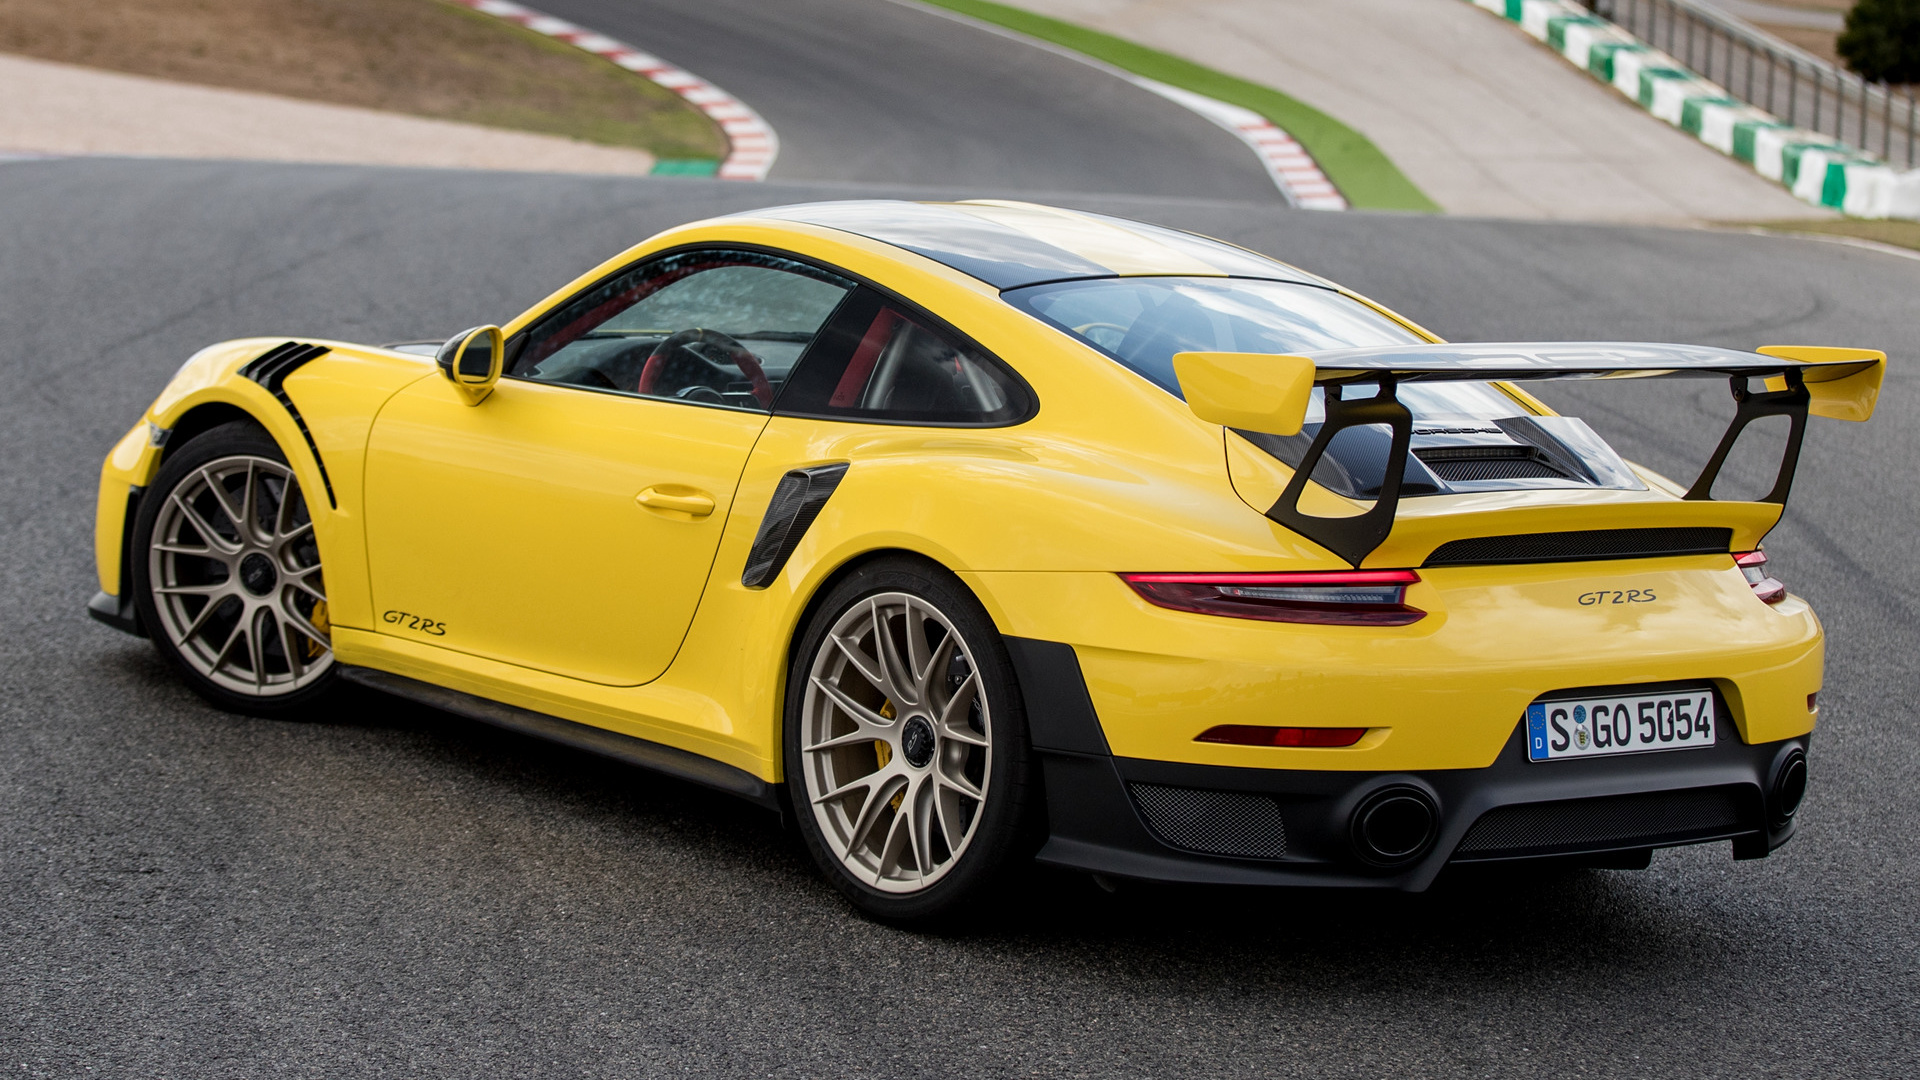 Free Download 2017 Porsche 911 Gt2 Rs Hd Wallpaper Background